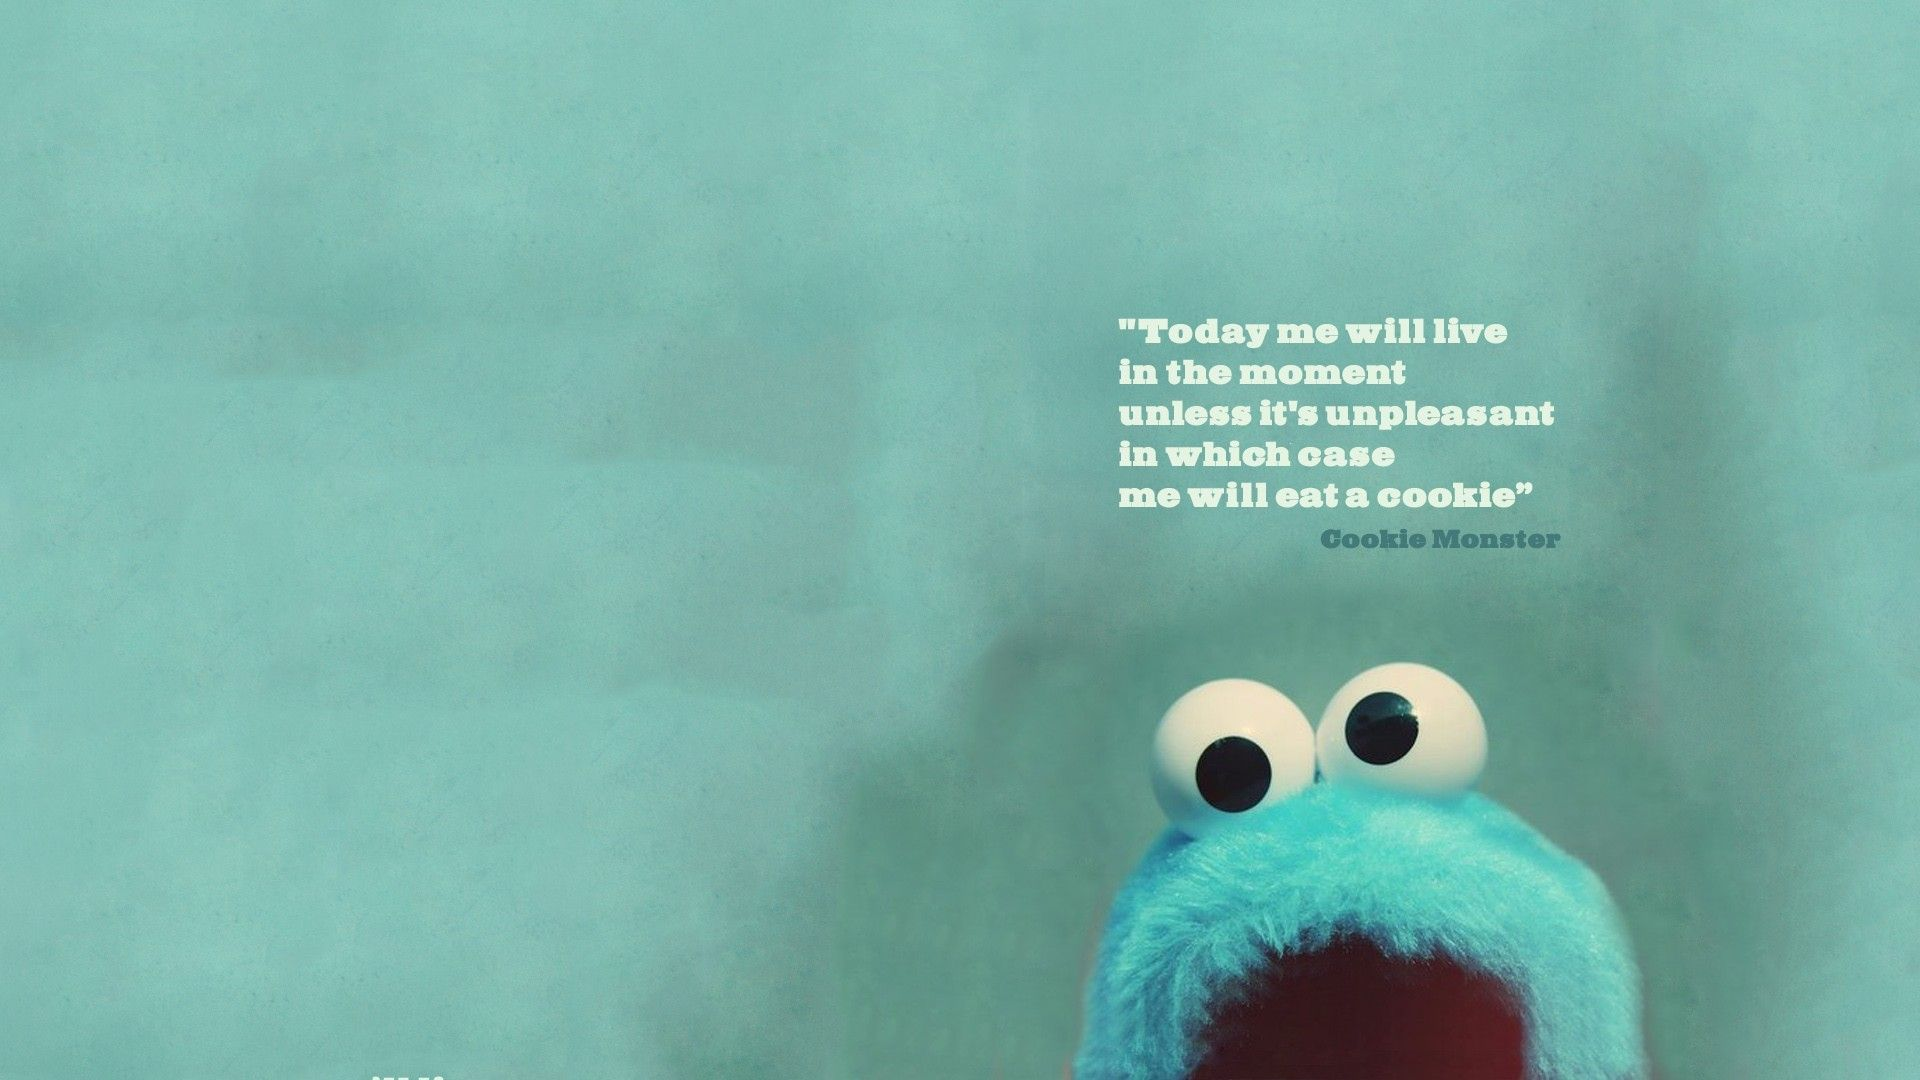 Cookie Monster Quote Wallpaper 1920x1080 Via Classy Bro Cute Desktop Wallpaper Laptop Wallpaper Quotes Desktop Background Quote